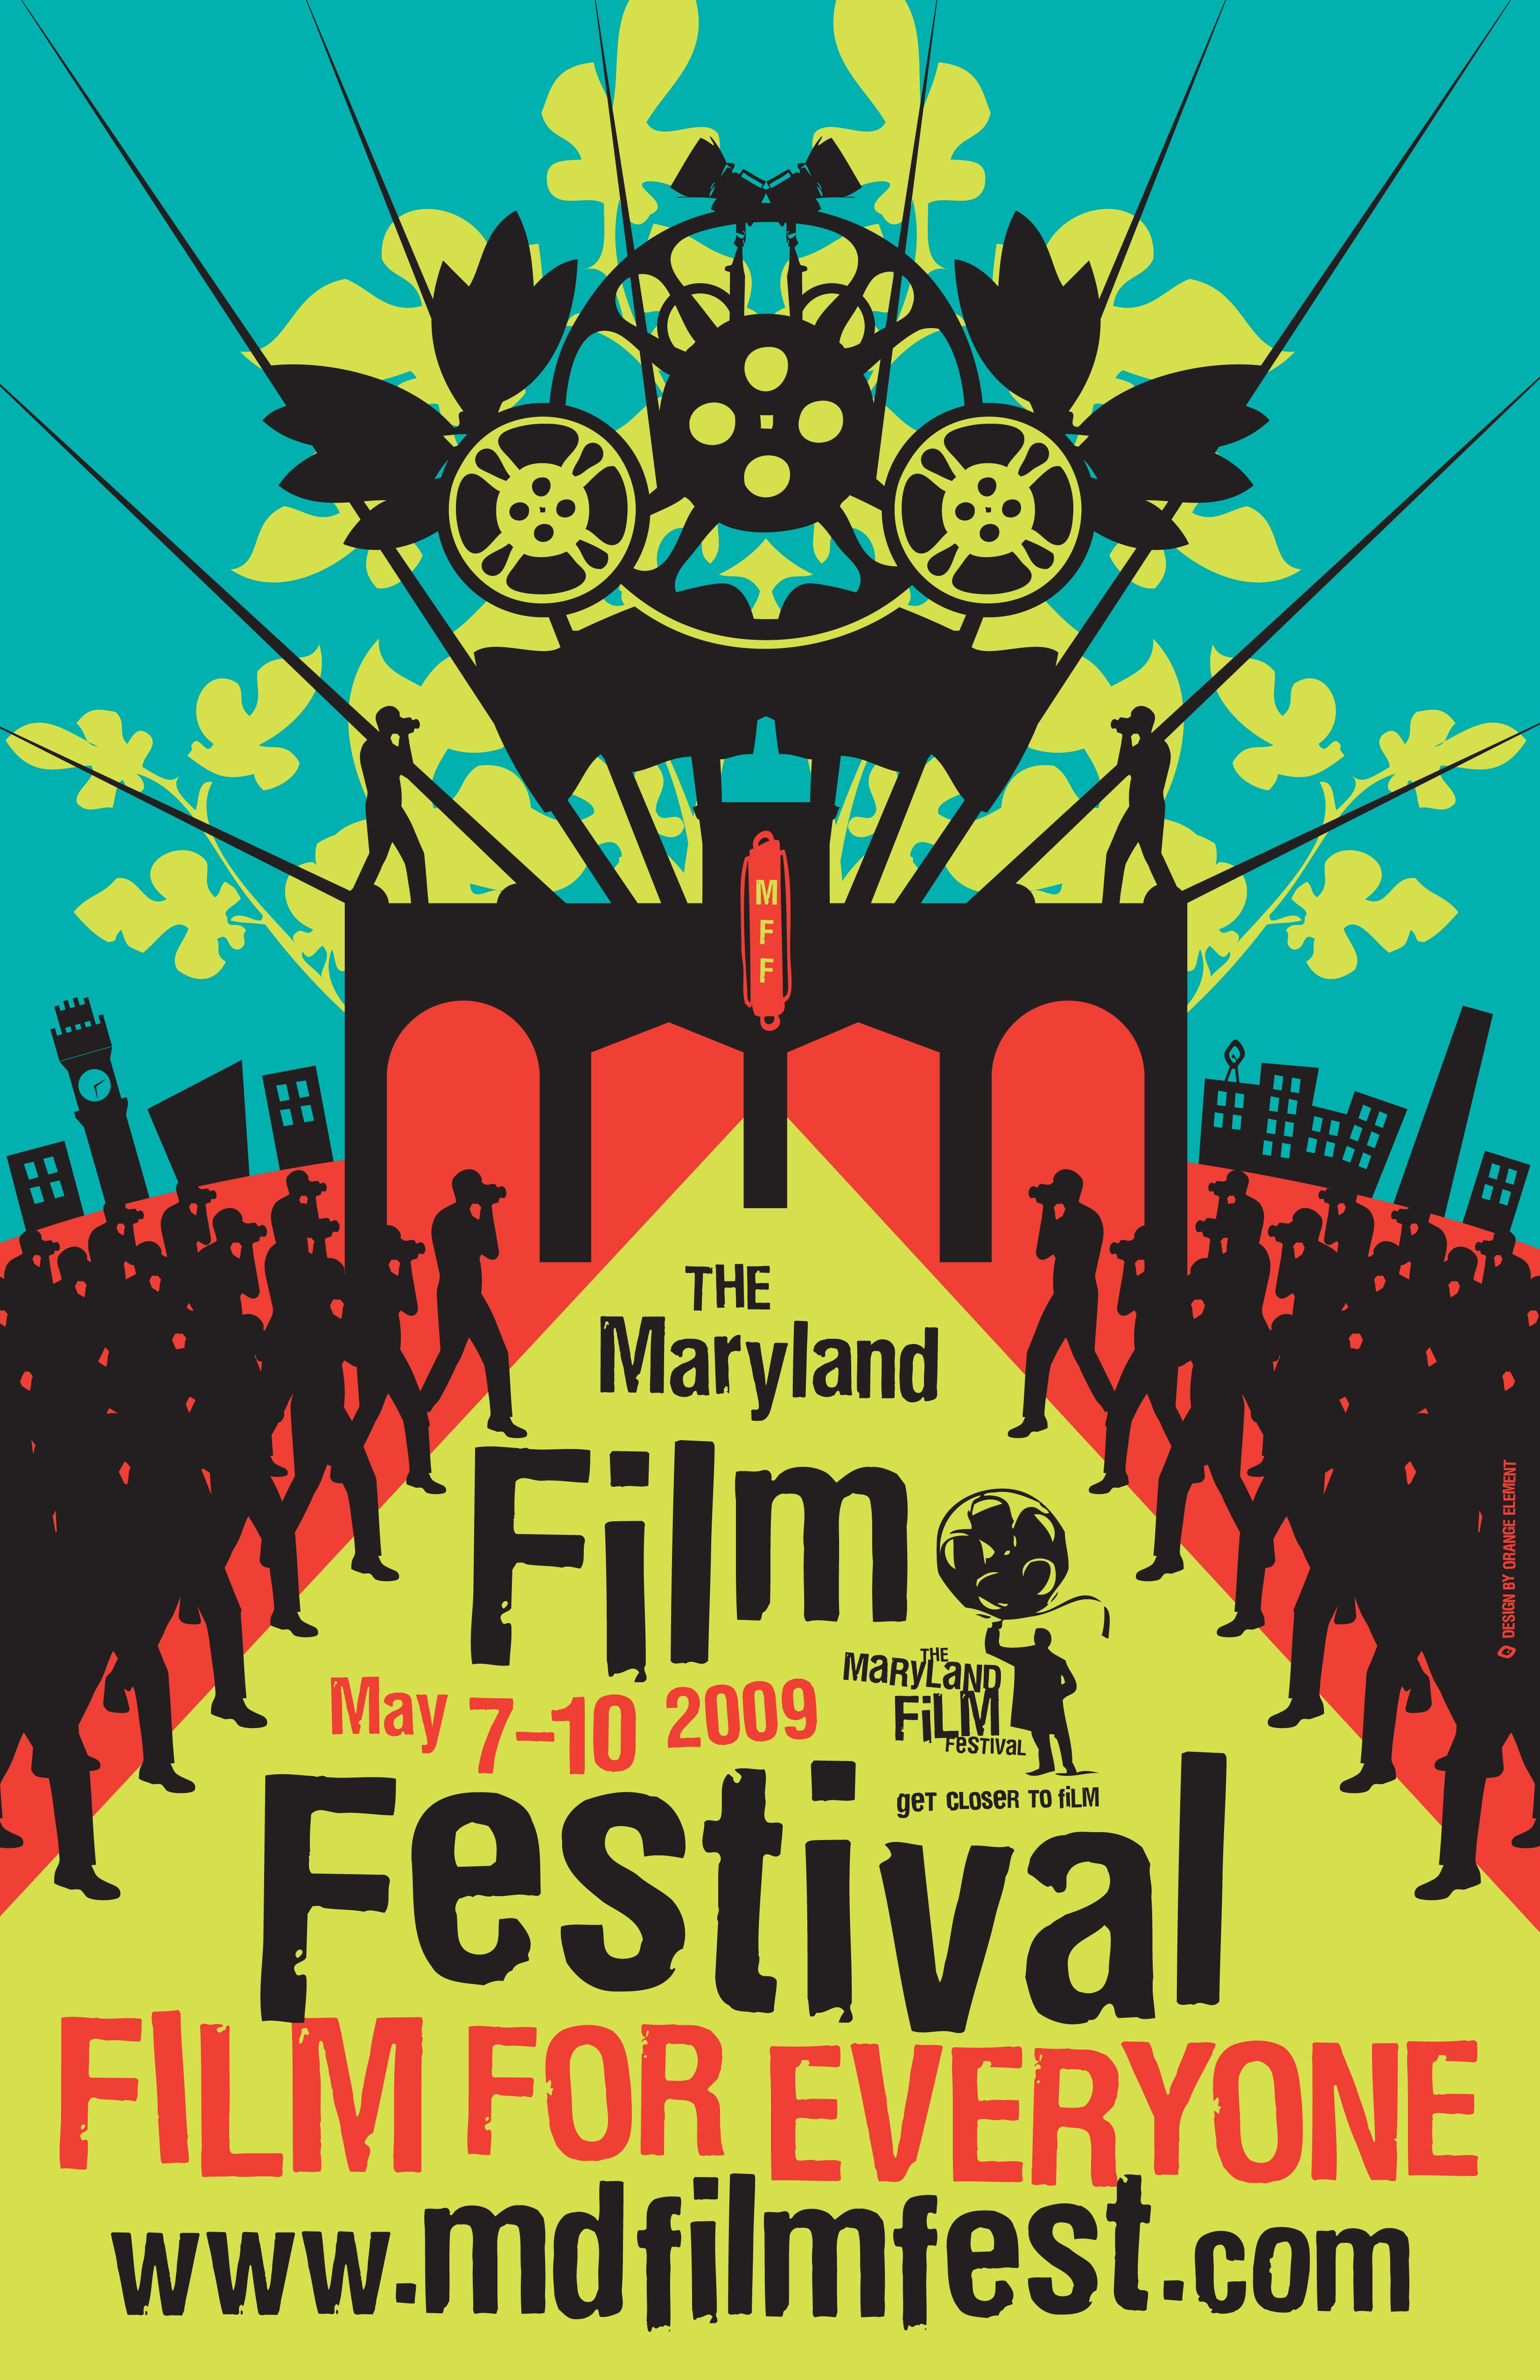 ... Maryland Film Festival  Festivals, Poster and Film festival poster